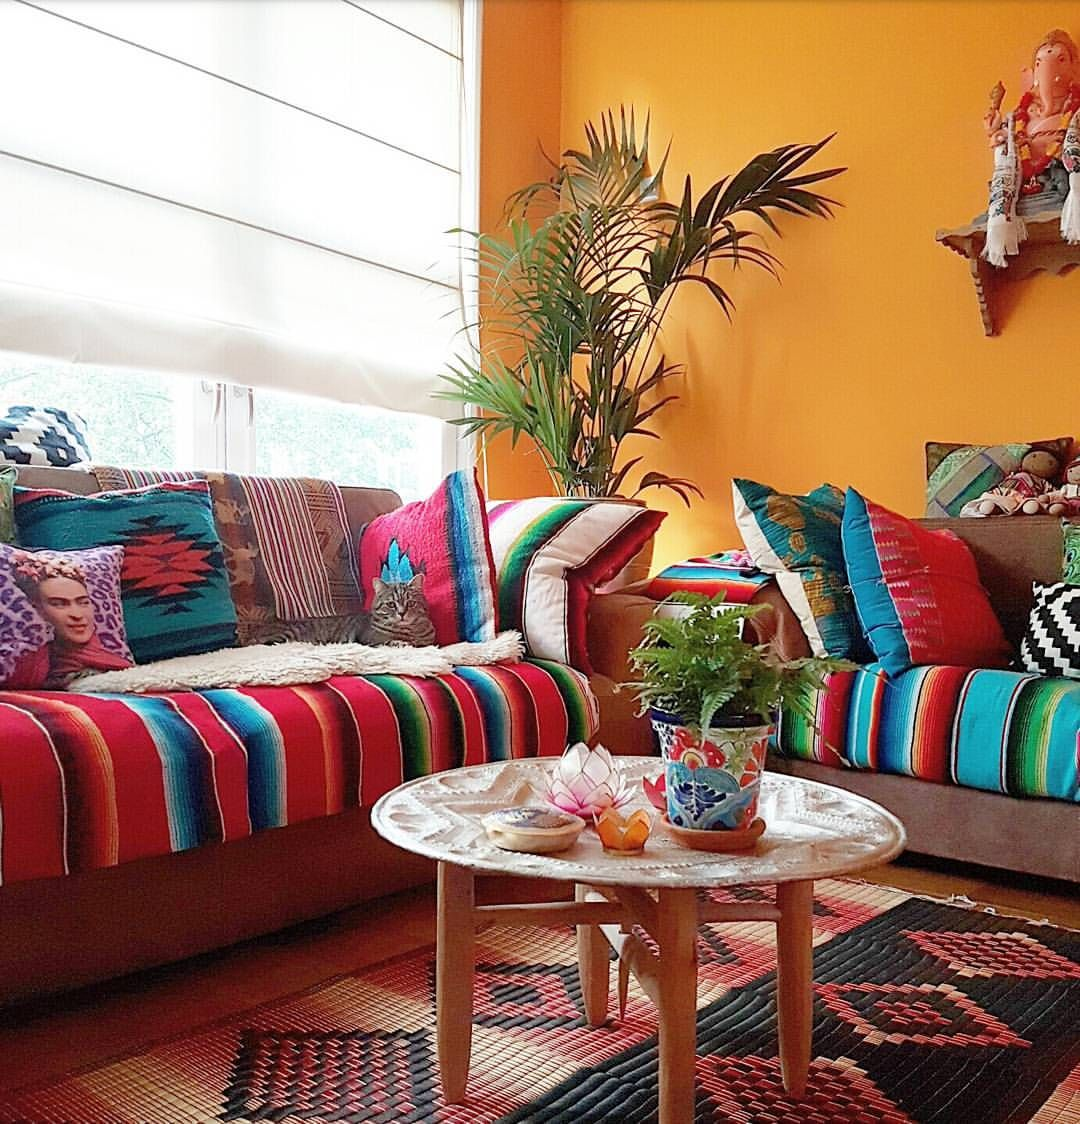 Decoraciones Hippies Decoracion Con Textiles Peruanos Deco And Hogar Pinterest